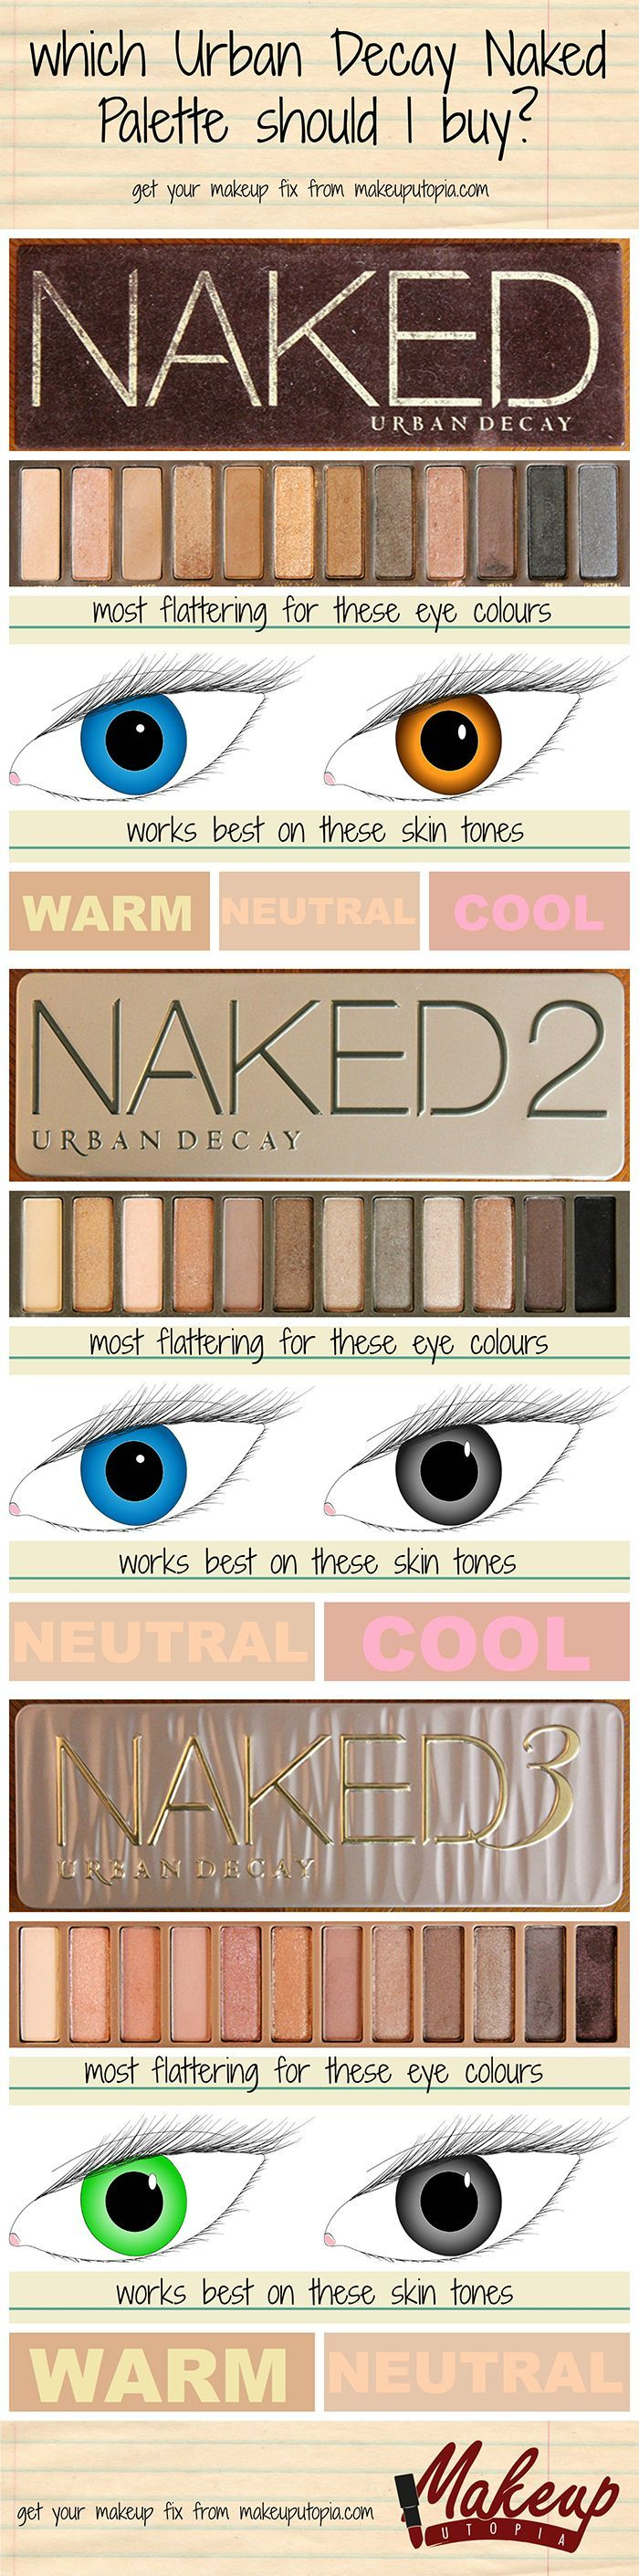 Makeup Utopia | Which Naked Palette should I buy | http://makeuputopia.com #urbandecay: